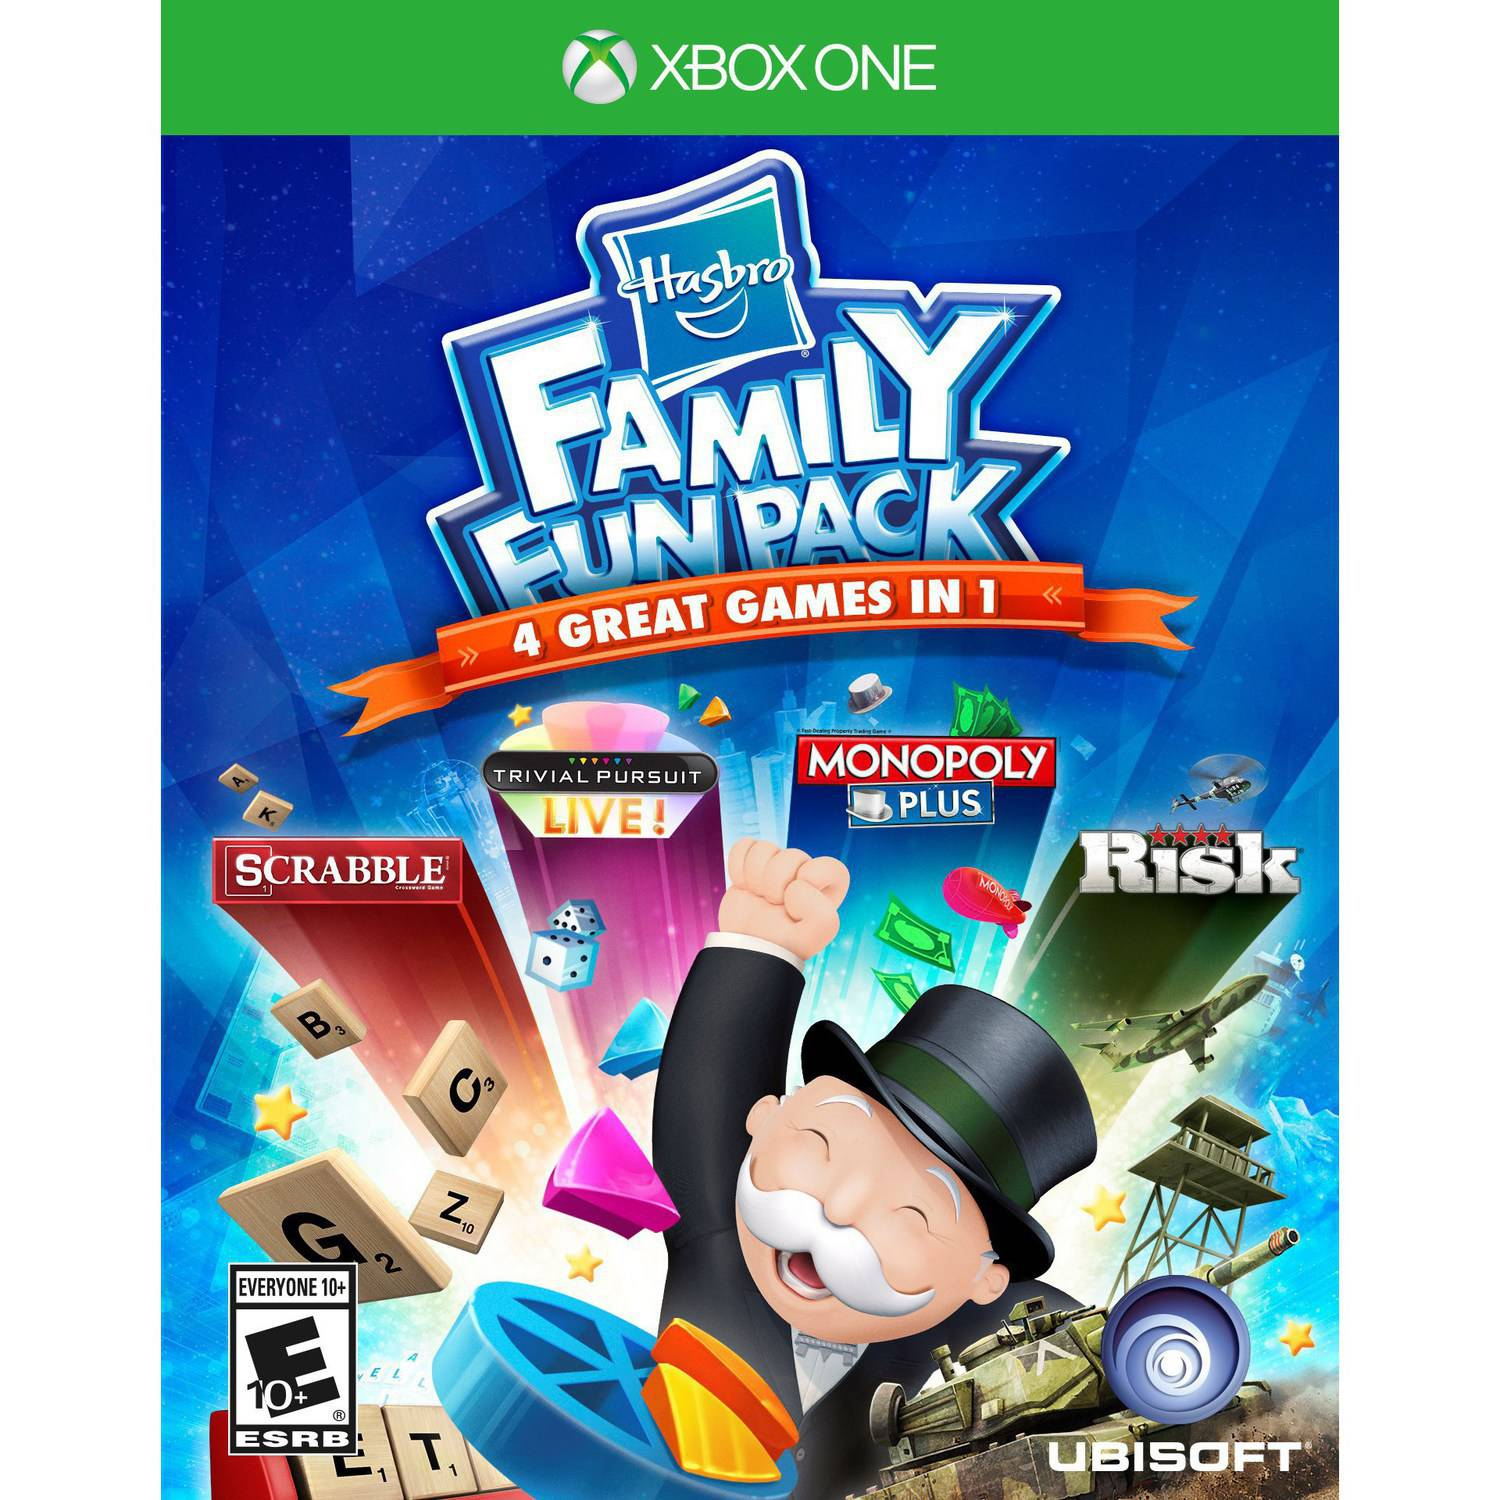 Hasbro Family Fun Pack (Xbox One) - Pre-Owned